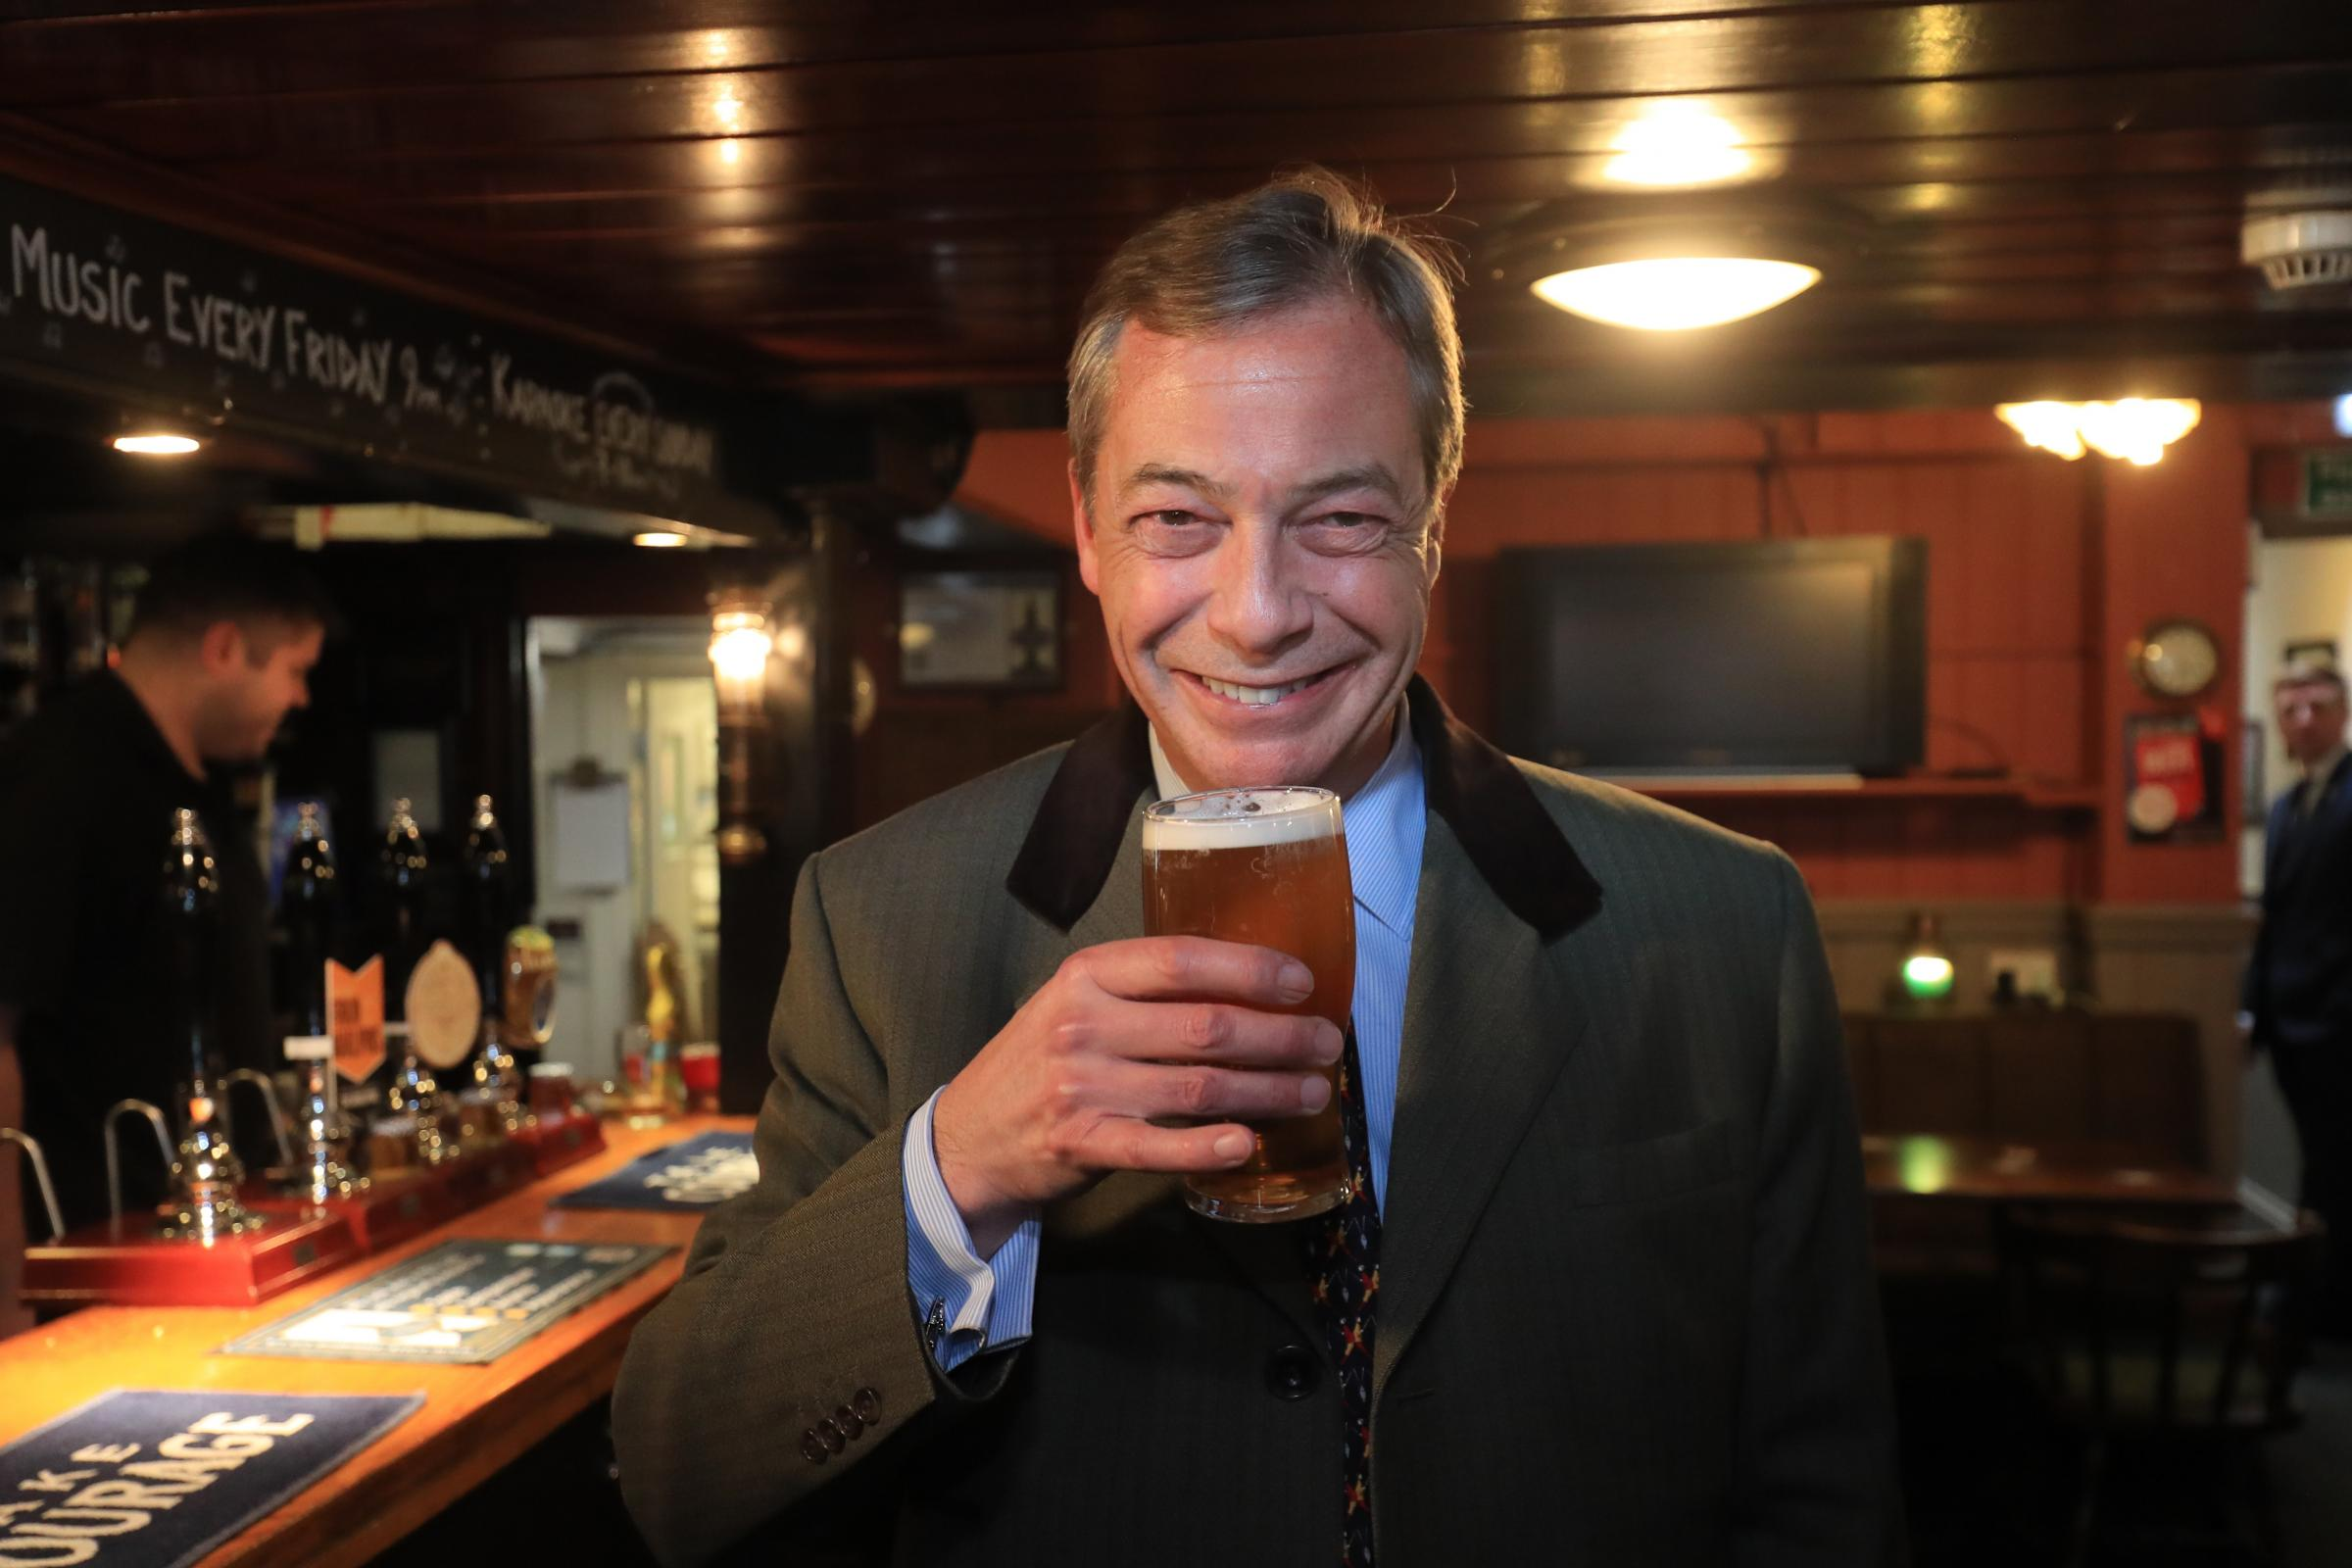 Nigel Farage enjoys a pint in Shoreham, West Sussex, during a walkabout ahead of a Brexit Party rally